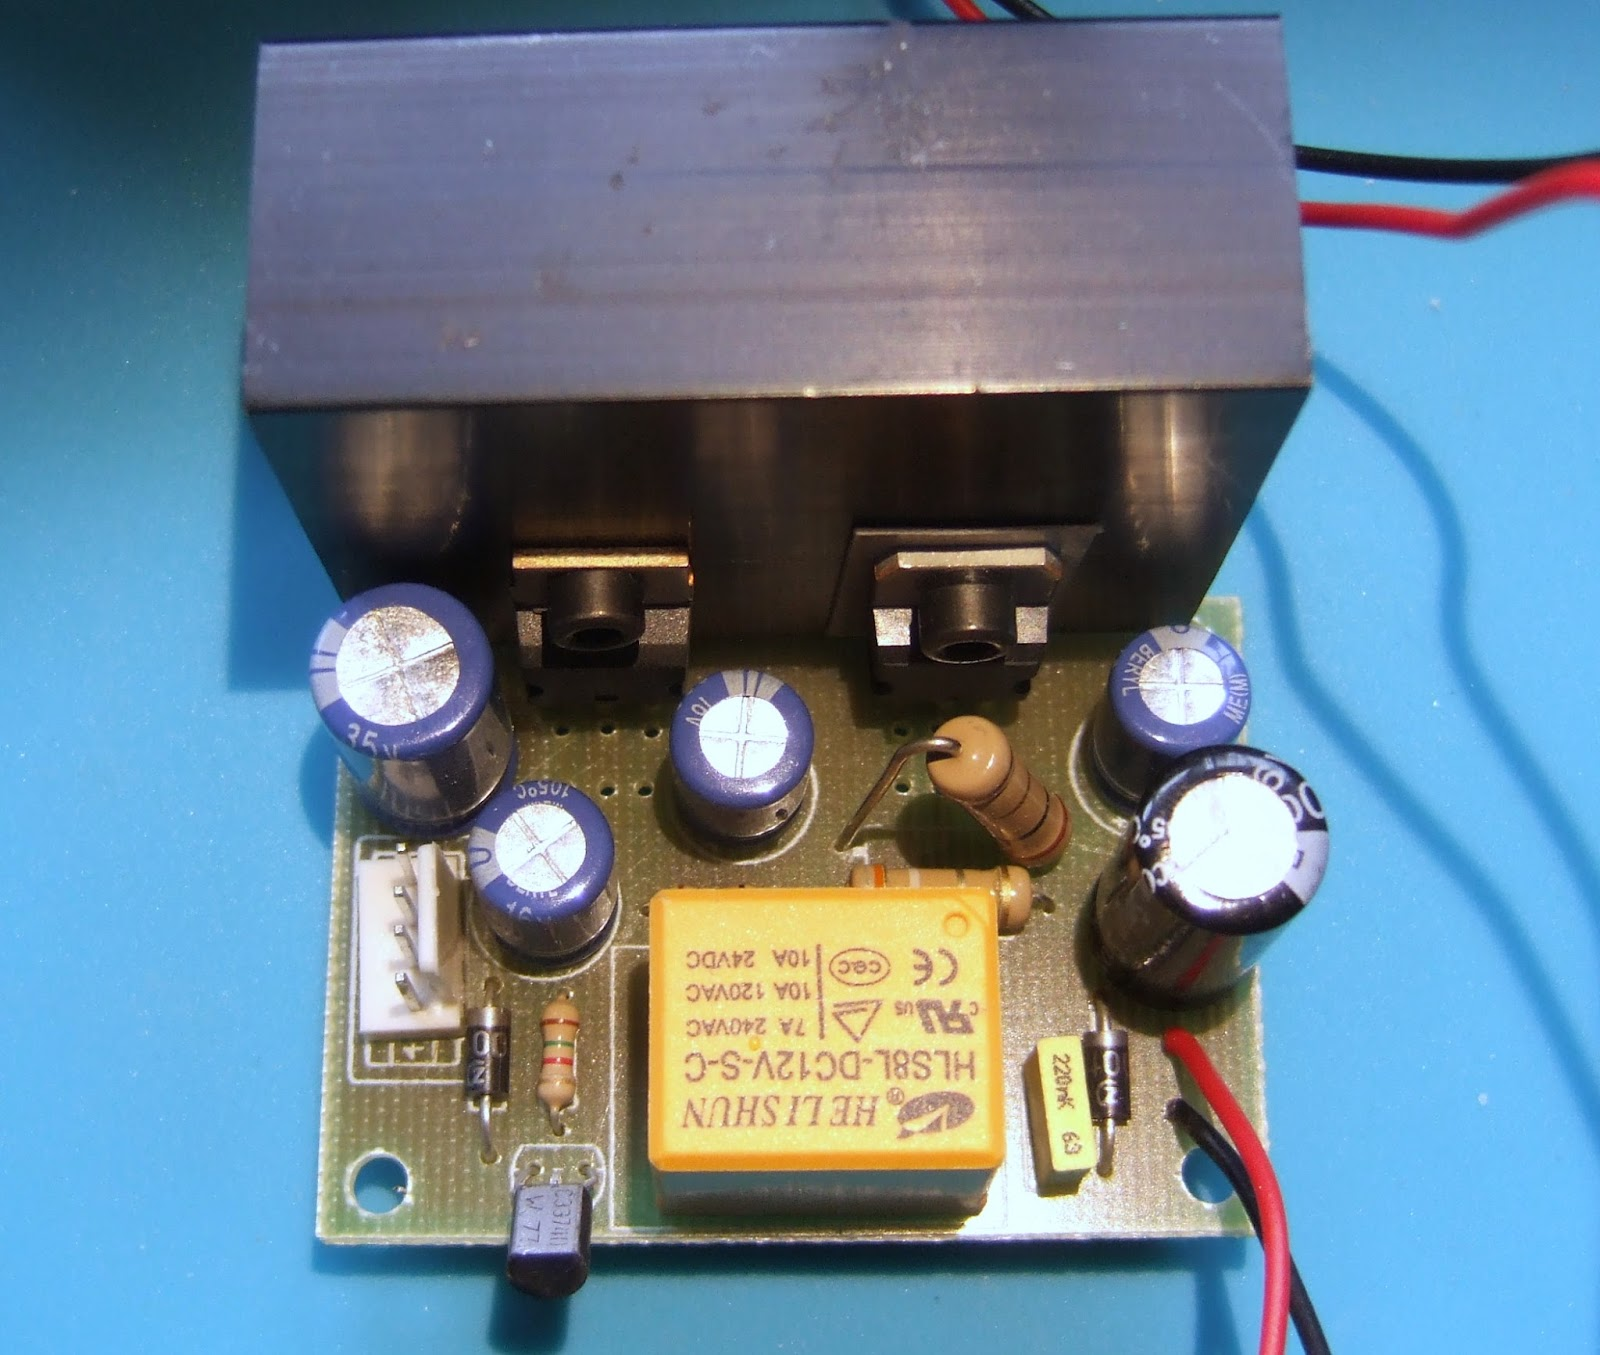 Hydraraptor August 2017 The Transistor In A Century Of Electronics It Is All Bit Last With Through Hole Components And Relay I Looked At Switching Waveform Found That Added An 82ms Delay